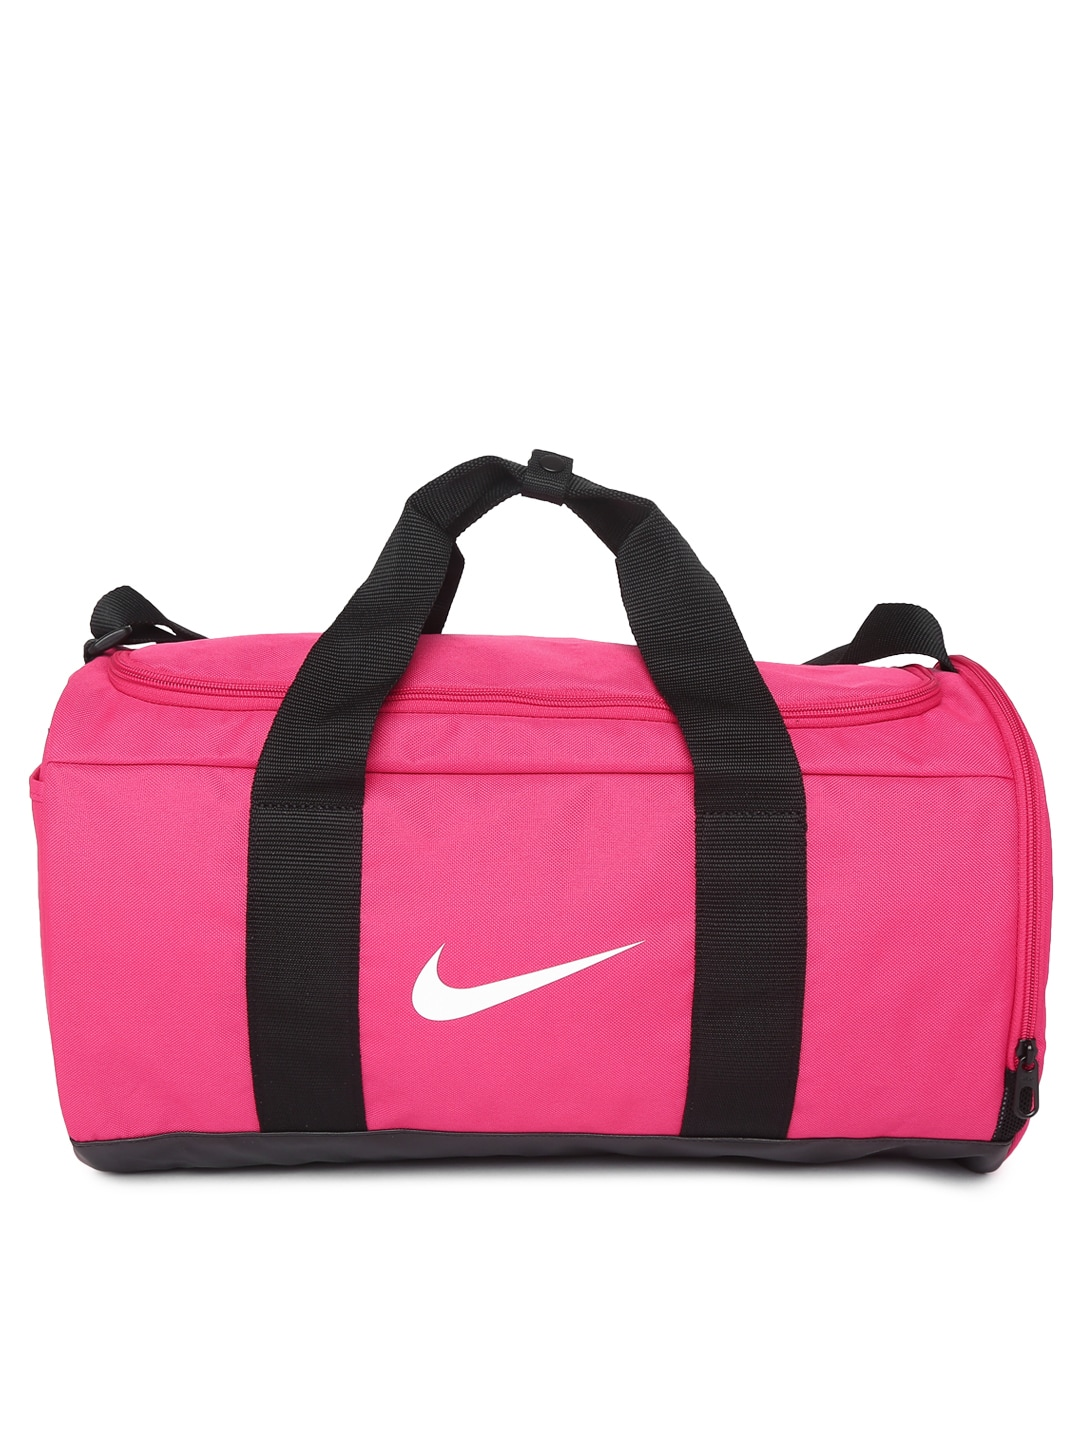 6f03bca03148 Nike Bags - Buy Nike Bag for Men